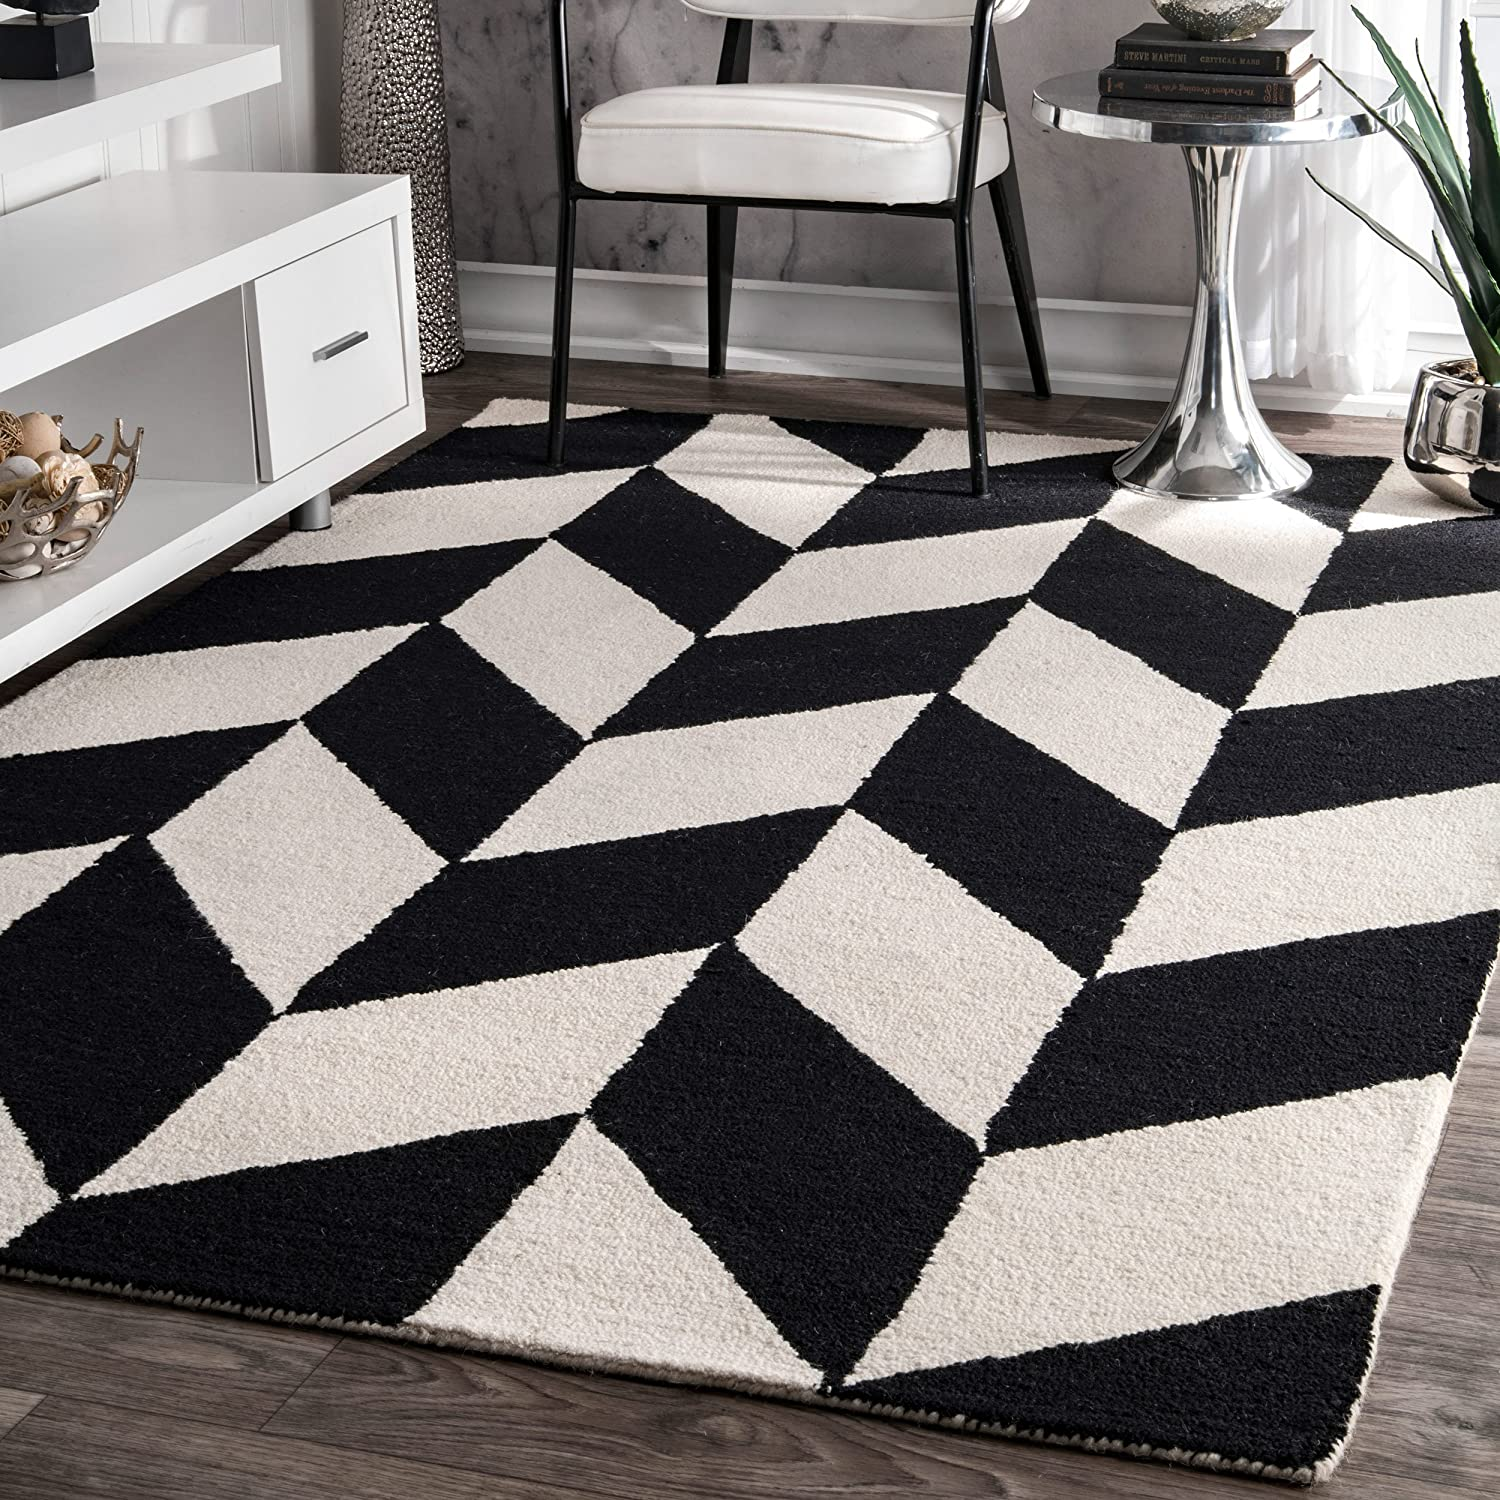 Nuloom Katte Hand Tufted Wool Area Rug 5 X 8 Black And White Home Kitchen Amazon Com